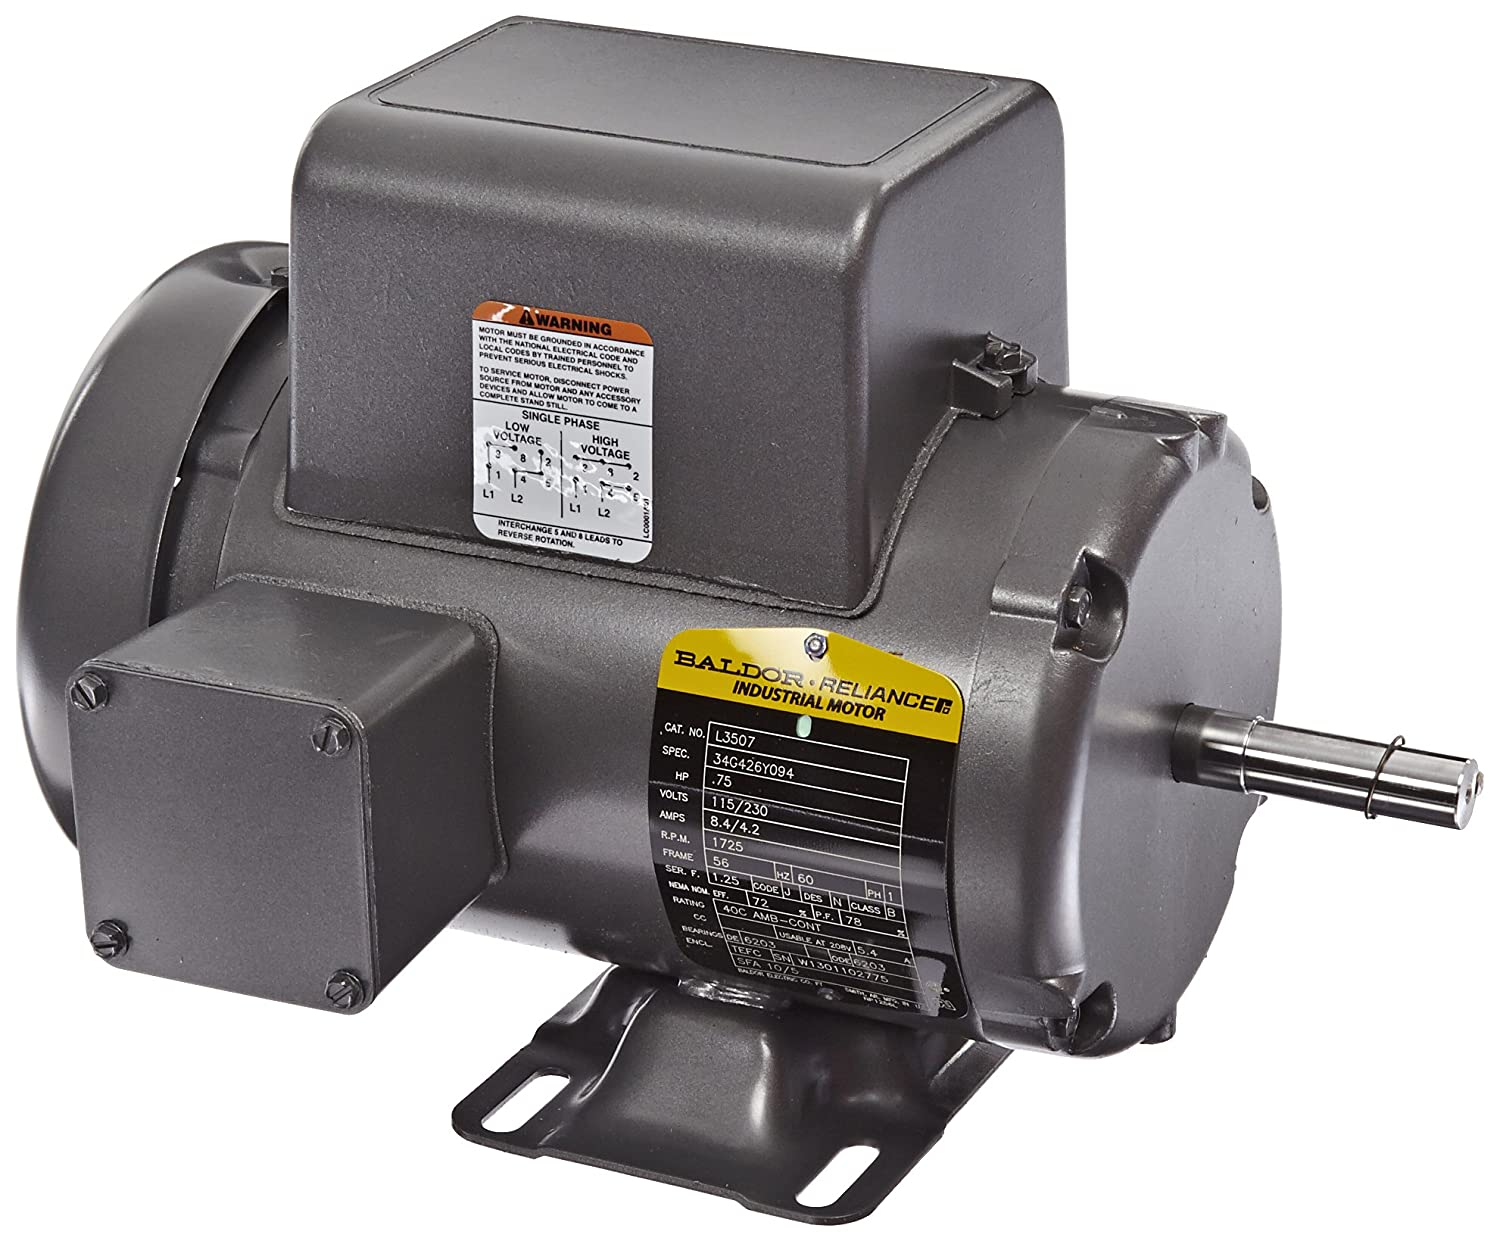 Baldor L3507 General Purpose Ac Motor Single Phase 56 Frame Tefc Motors Enclosure 3 4hp Output 1725rpm 60hz 115 230v Voltage Electric